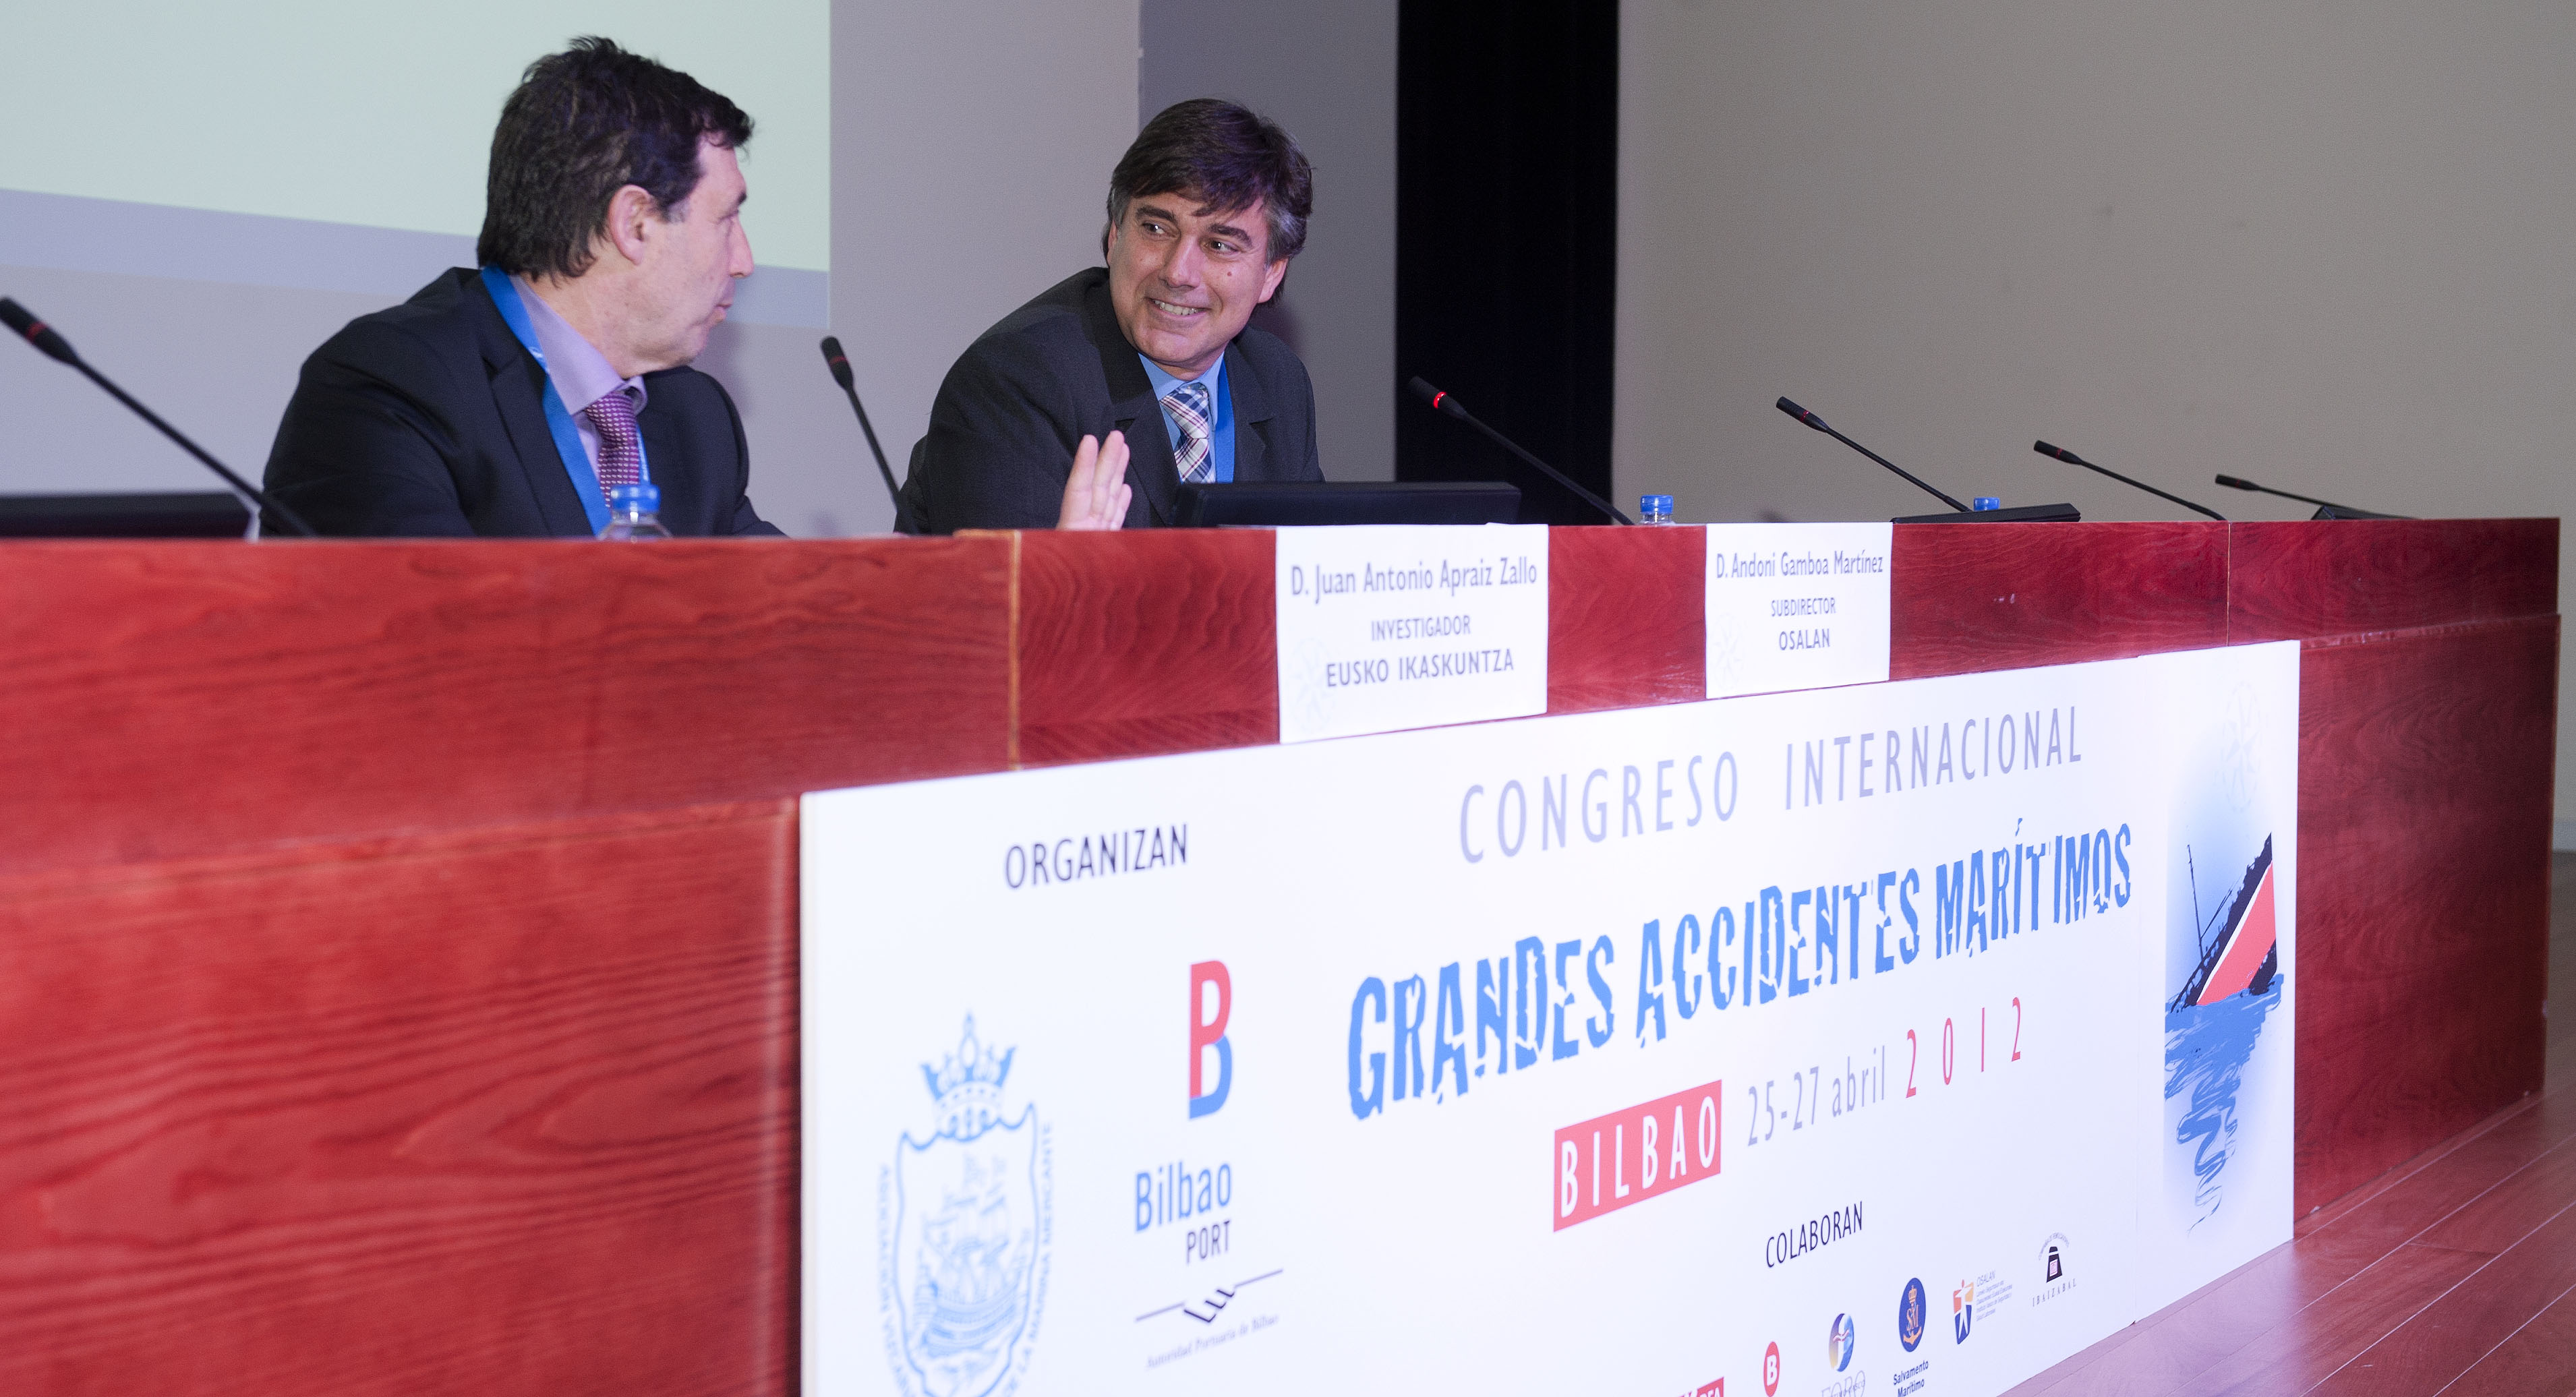 2012_04_25_osalan_congreso_accidentes_maritimos_10.jpg